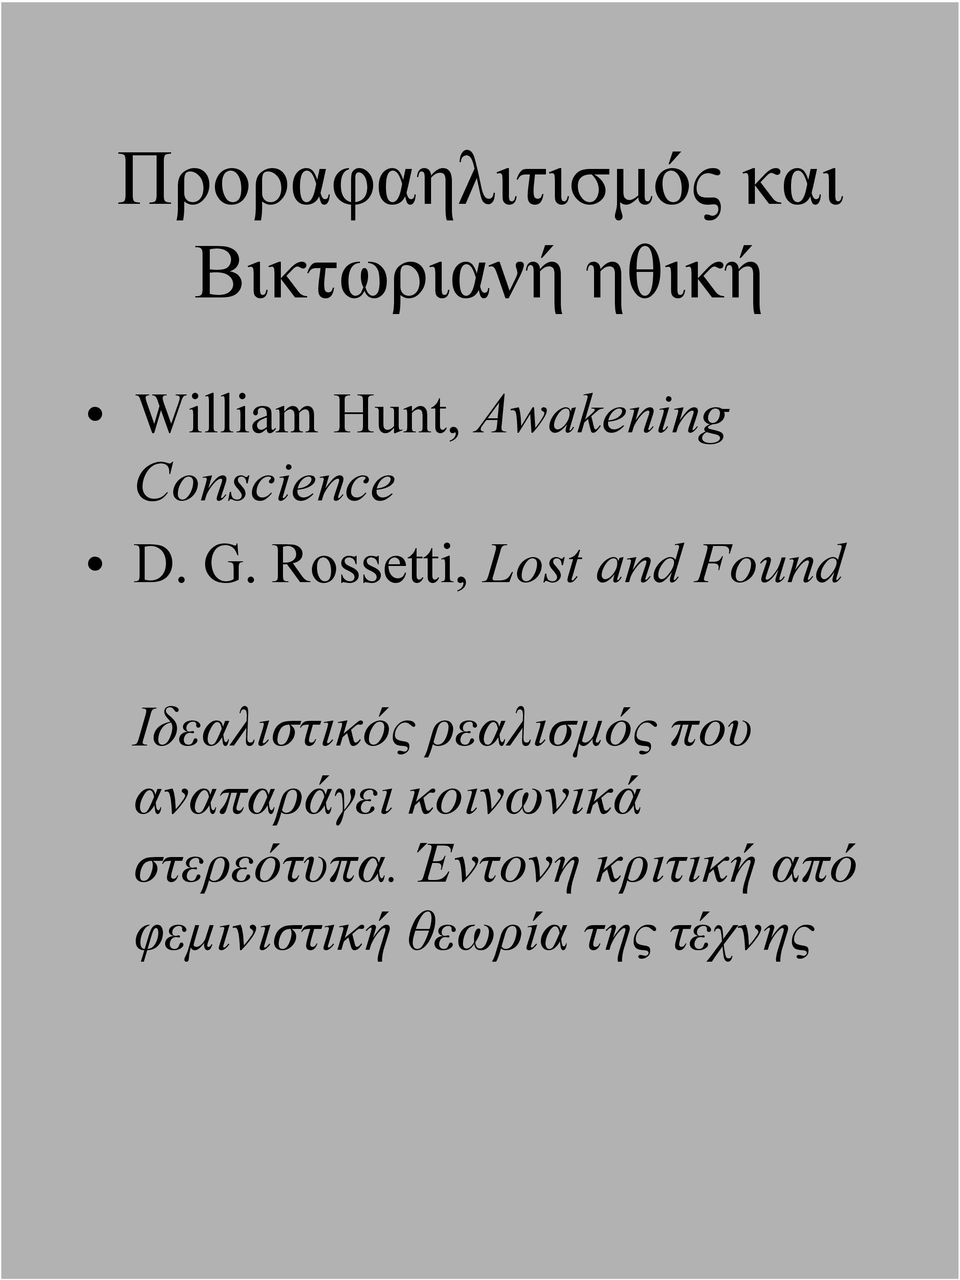 Rossetti, Lost and Found Ιδεαλιστικός ρεαλισμός που